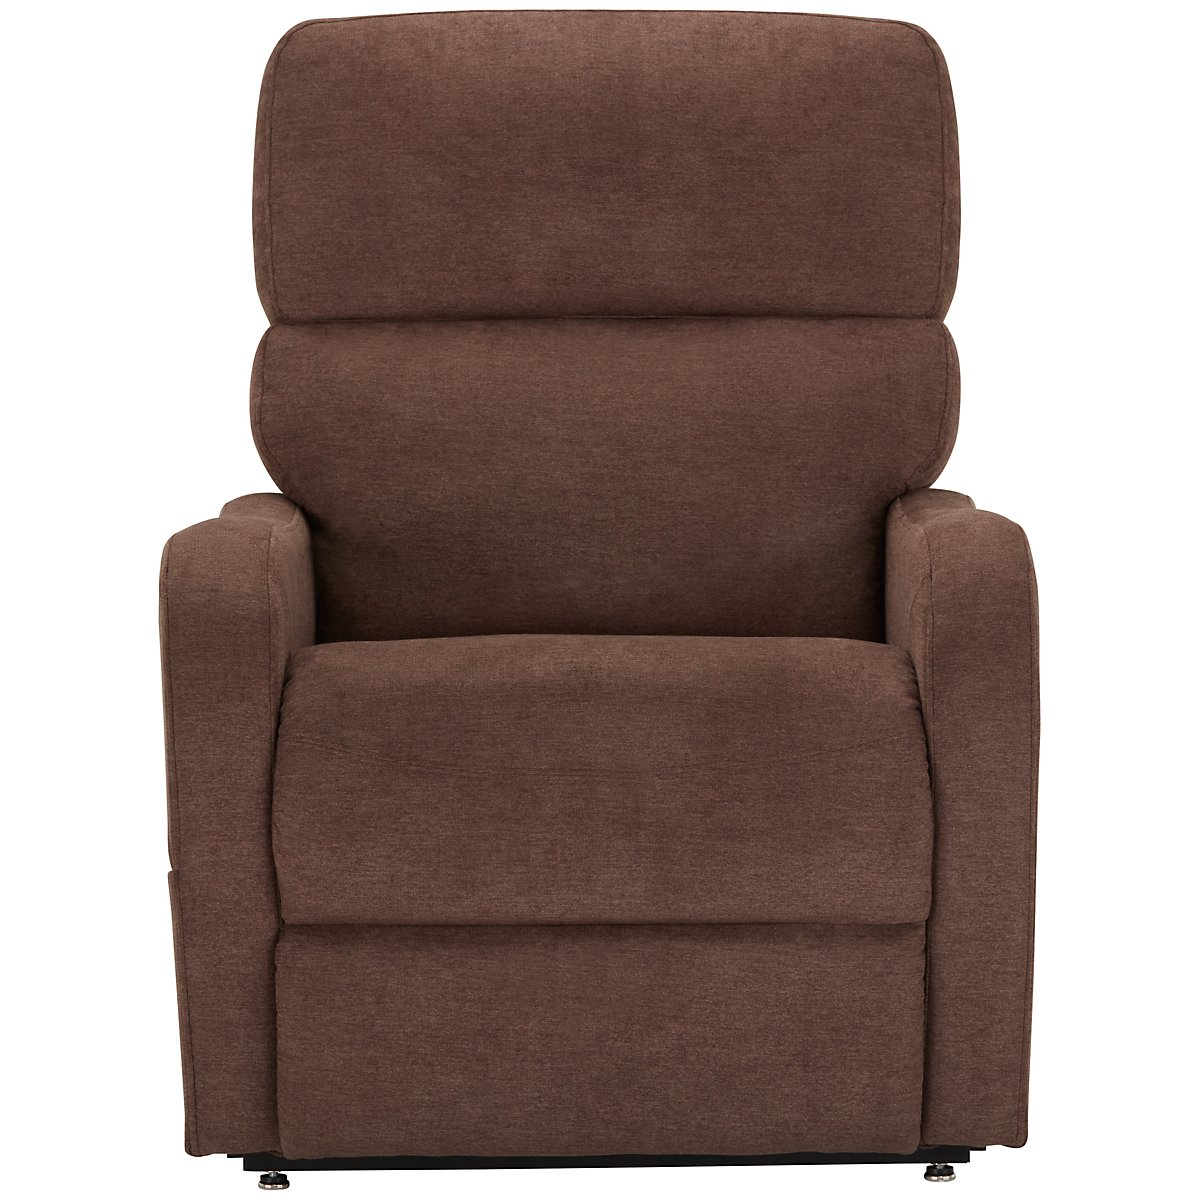 City Furniture Nora Brown Fabric Power Lift Recliner